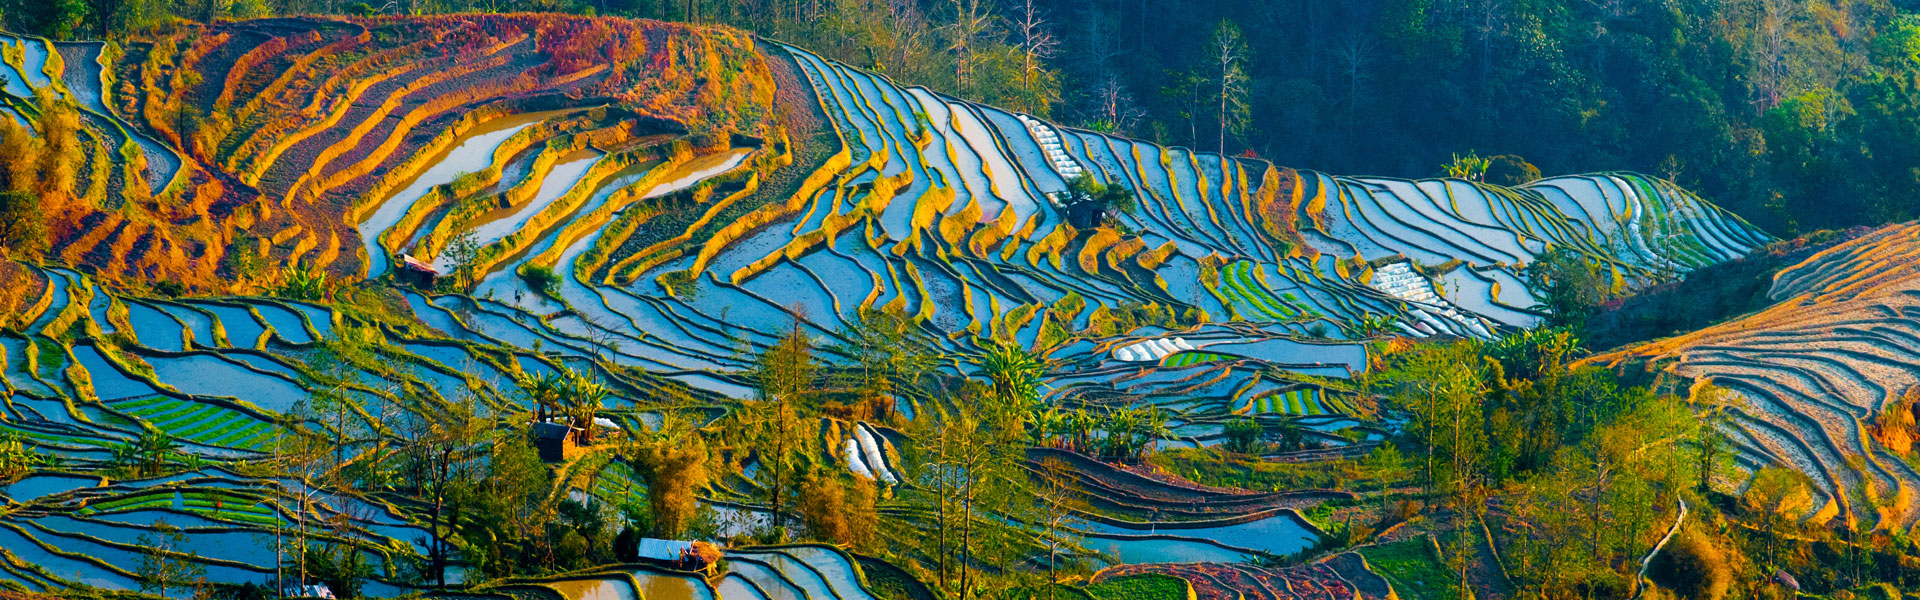 yuangyang rice terraces in China